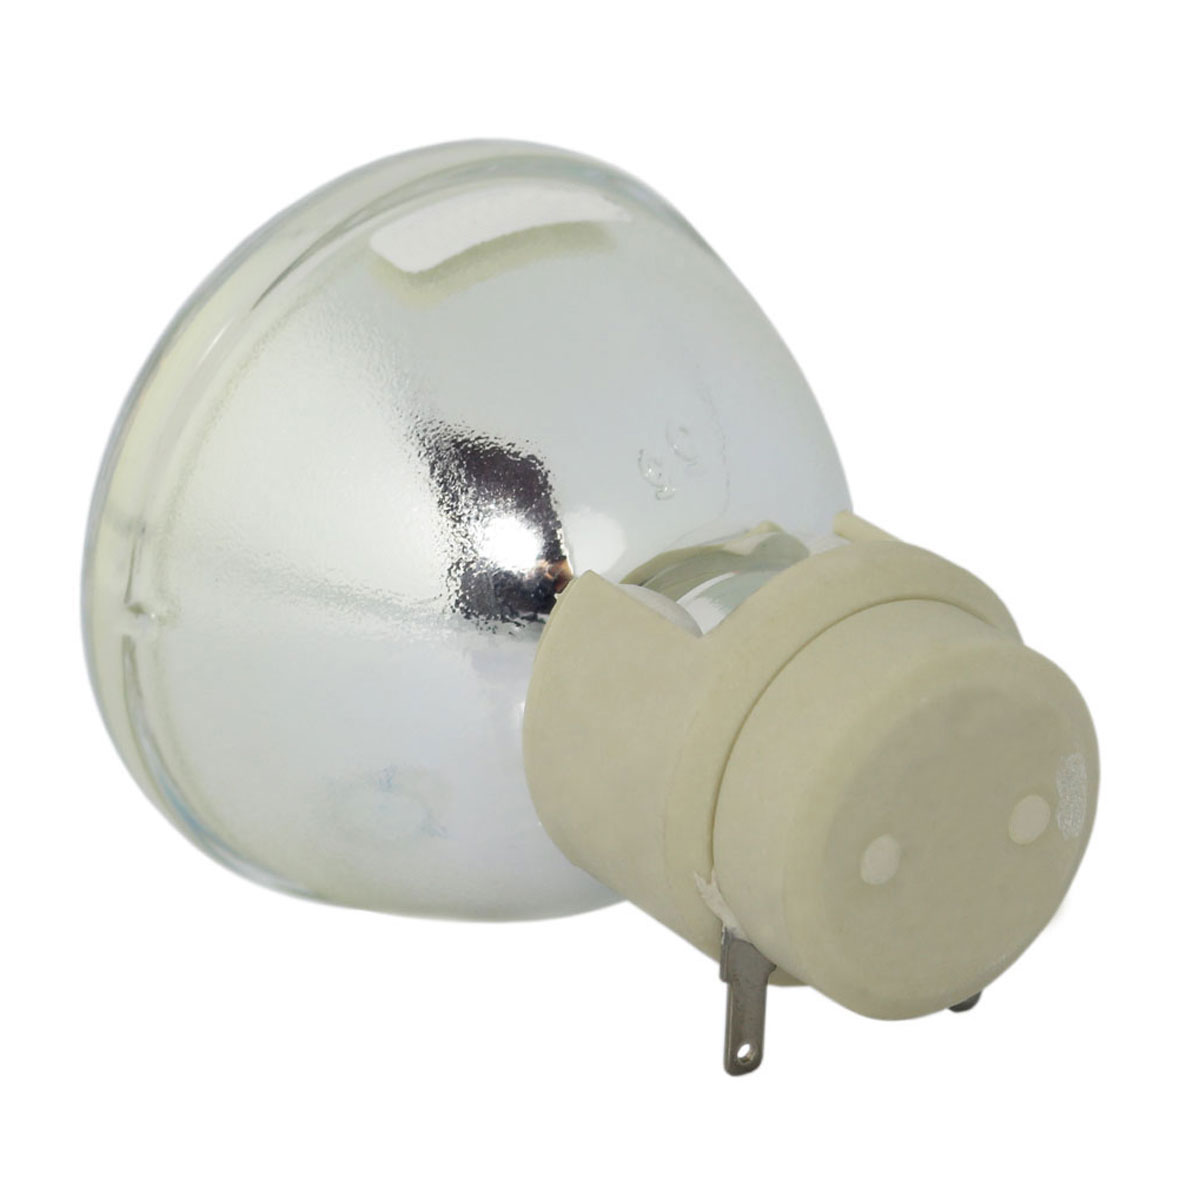 Lutema Economy for Viewsonic PA501S Projector Lamp (Bulb Only) - image 1 of 5